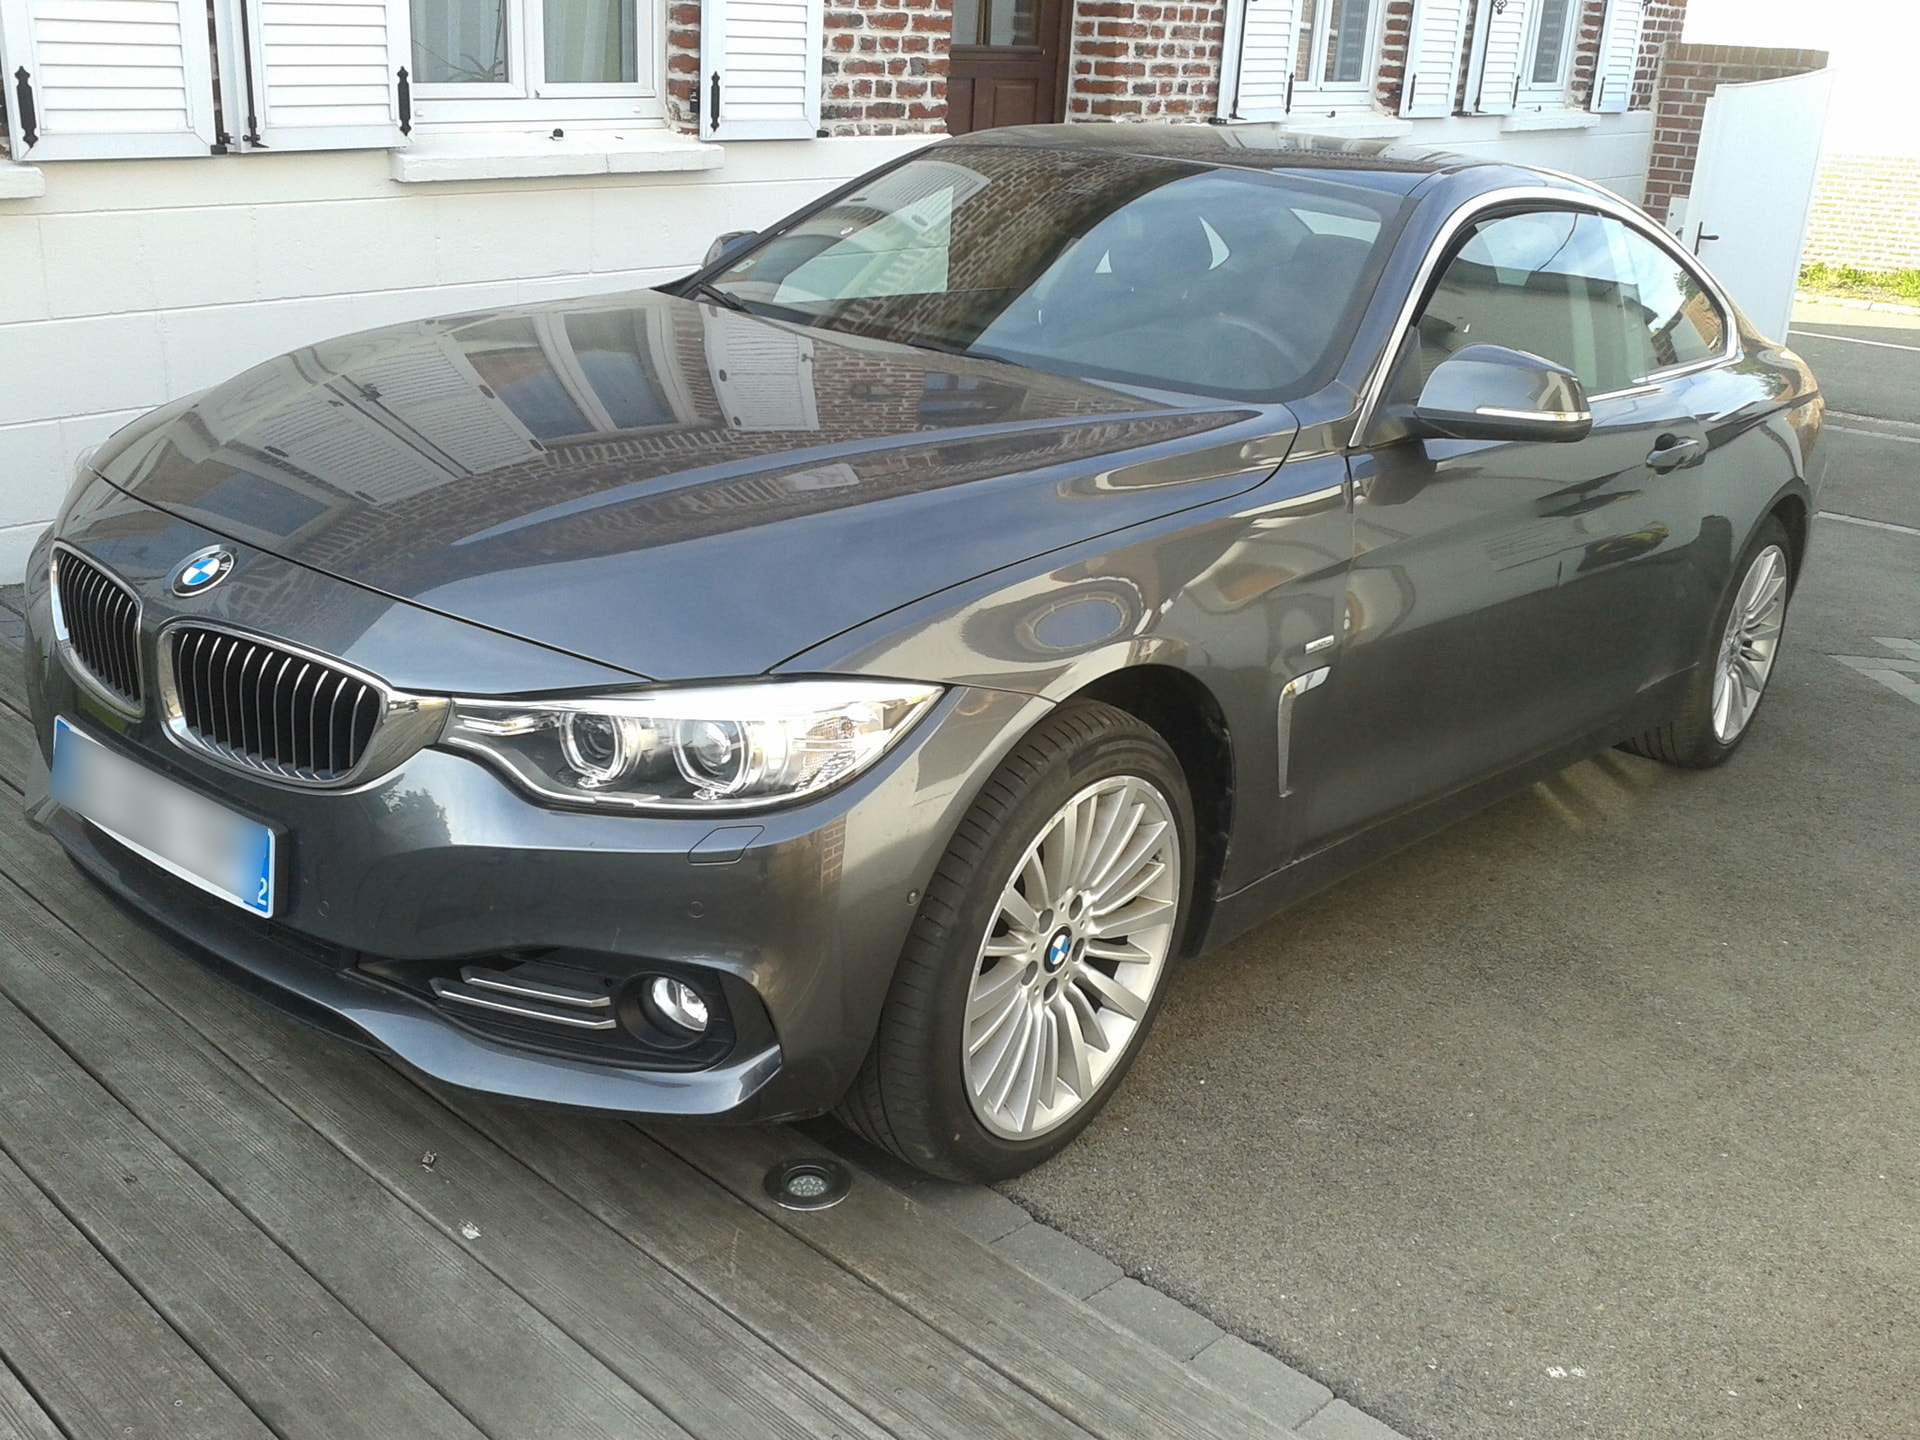 BMW SERIE 4 COUPE 430 D 260 LUXURY XDRIVE BVA - Carverntura